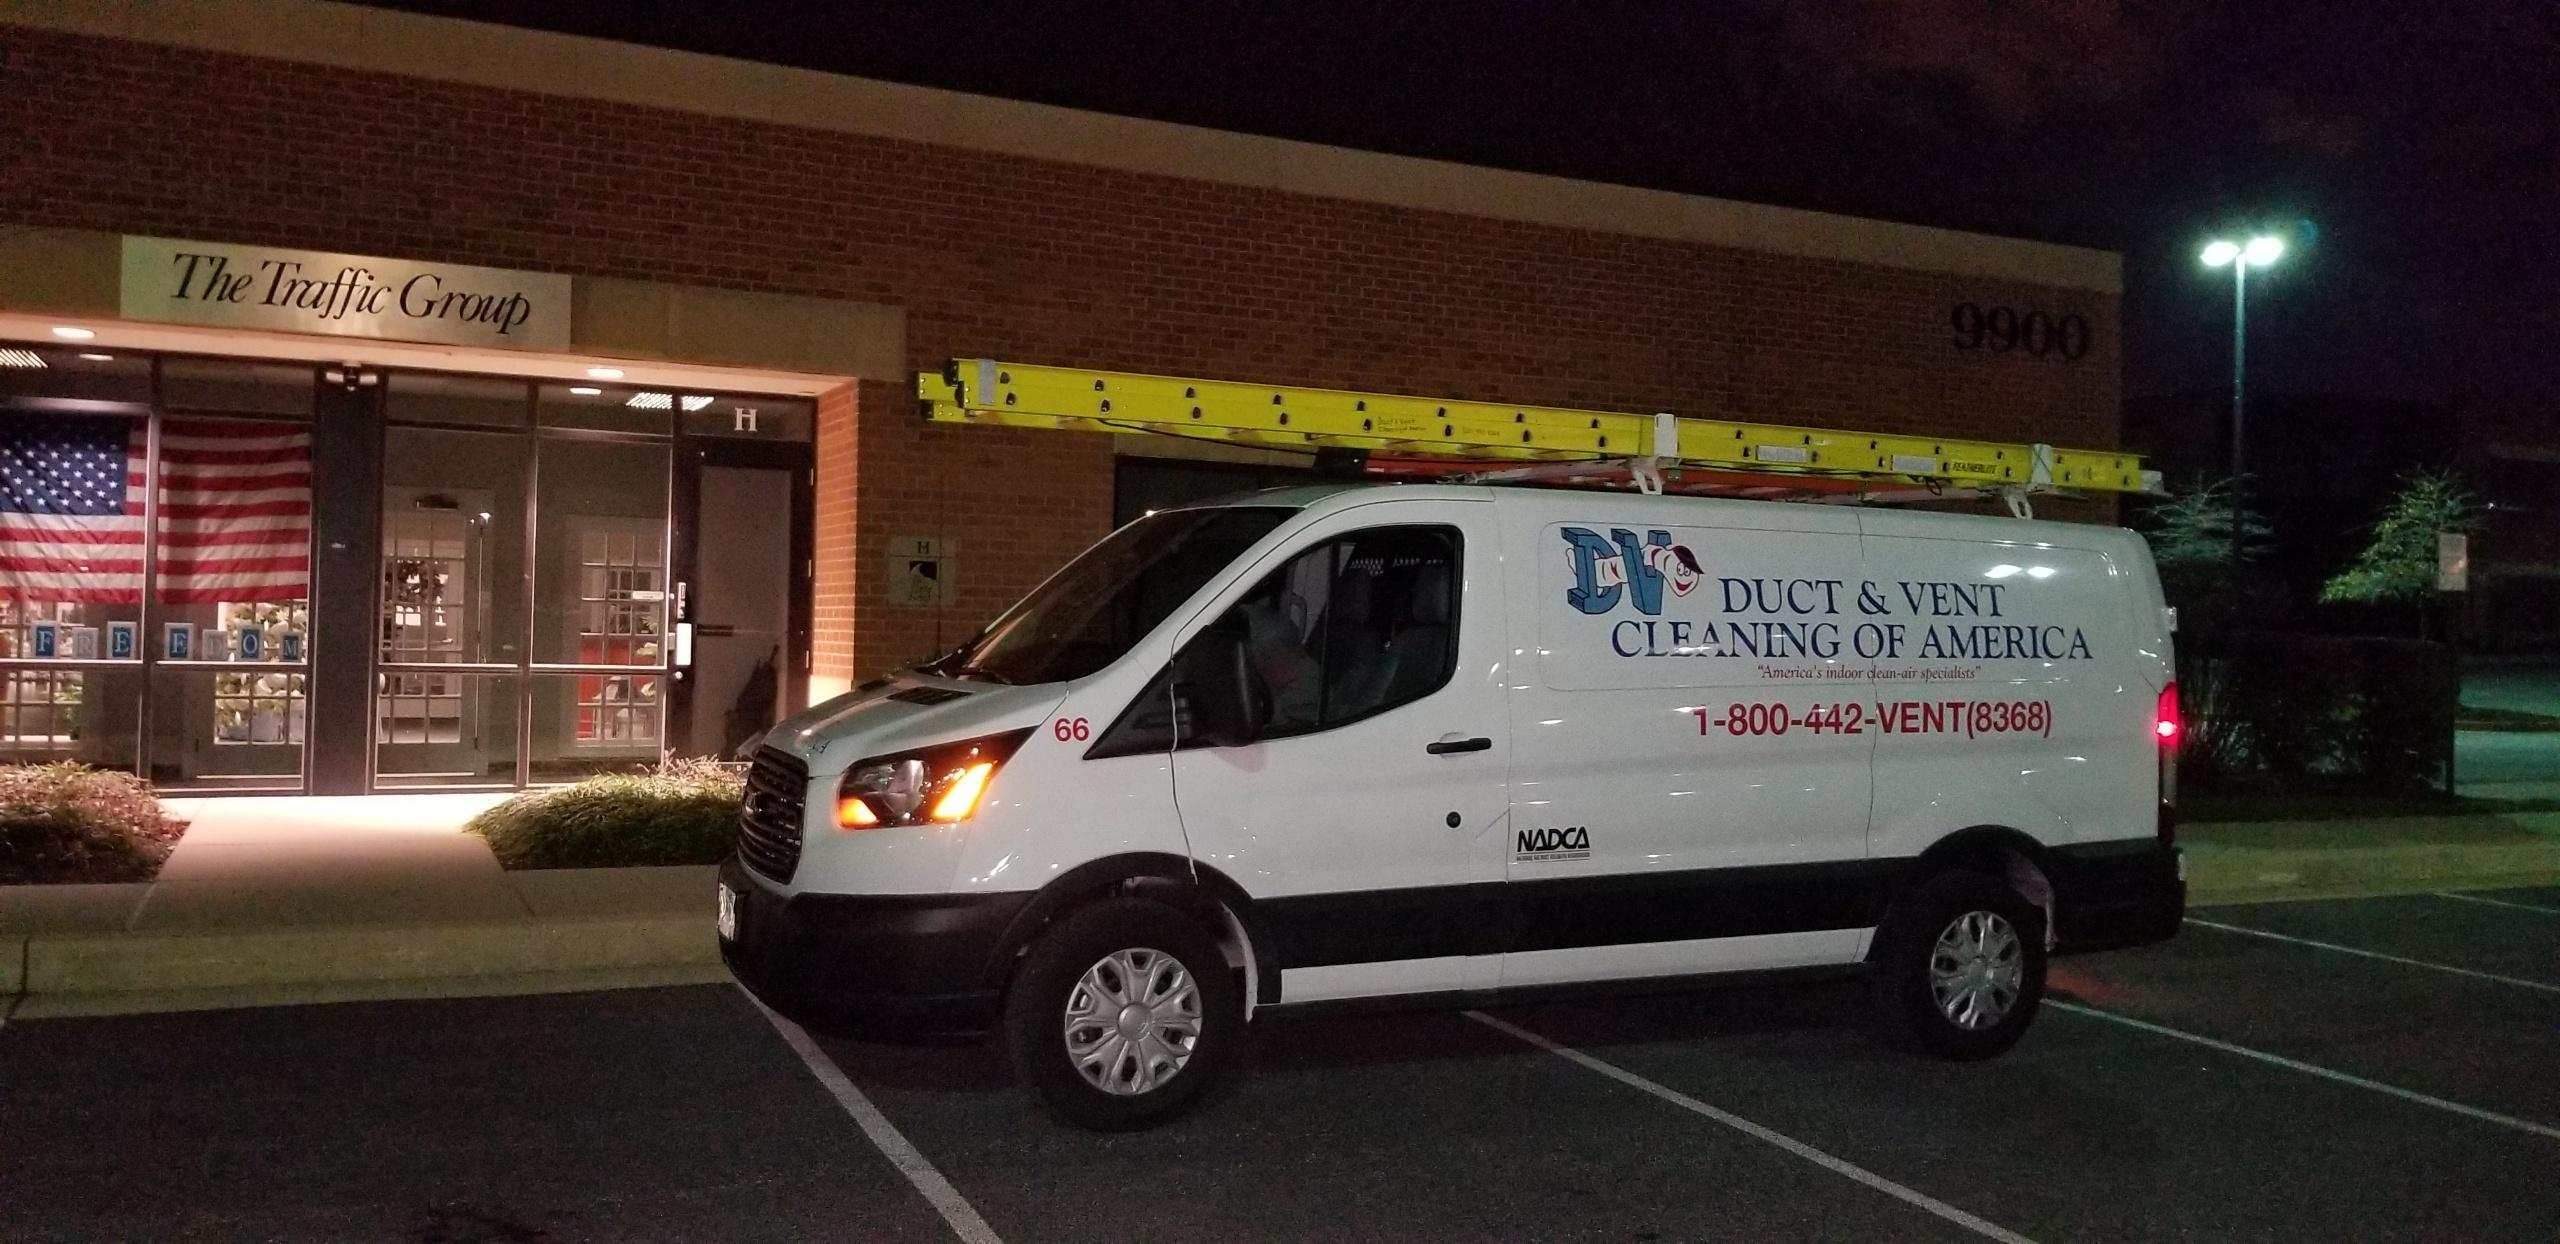 The Traffic Group Nottingham - Office Duct Cleaning - Baltimore, MD The-Traffic-Group.jpg